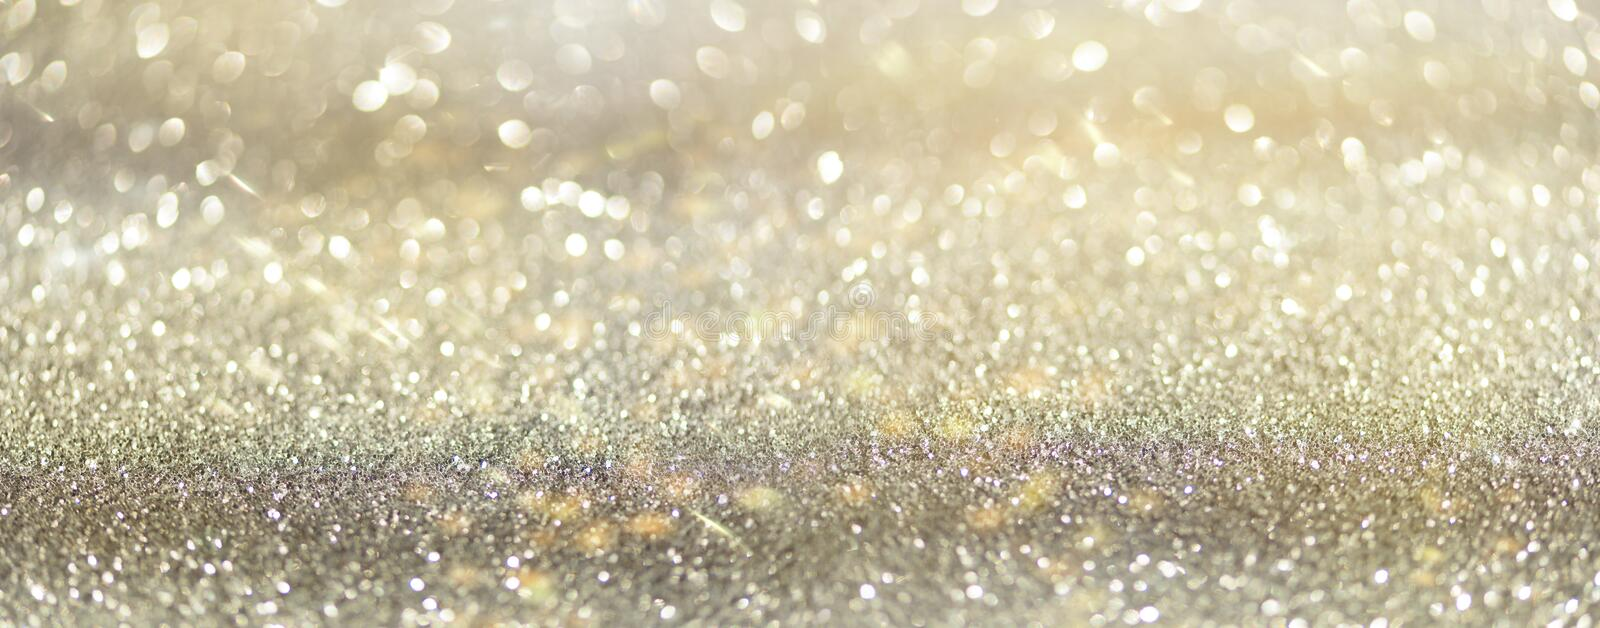 Gold and silver abstract bokeh lights. Shiny glitter background with copy space. New year and Christmas concept. Sparkling royalty free stock image